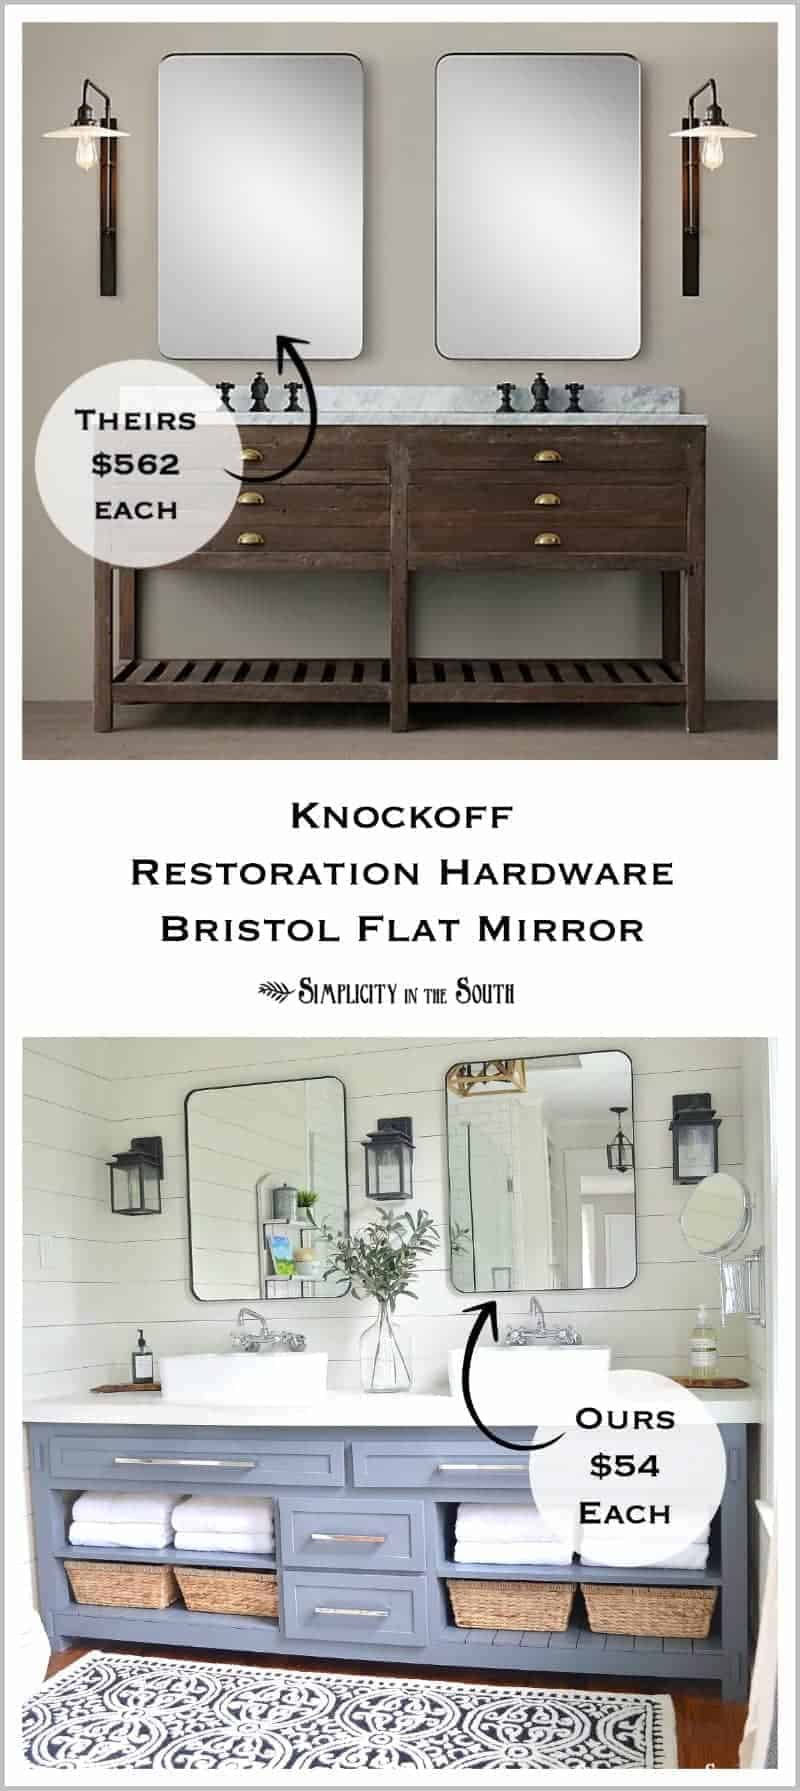 Love this!!! DIY Knockoff Restoration Hardware Inspired Bristol Flat mirror. This rounded rectangular mirror can be made a just a fraction of the cost of the original! Perfect for a modern farmhouse bathroom